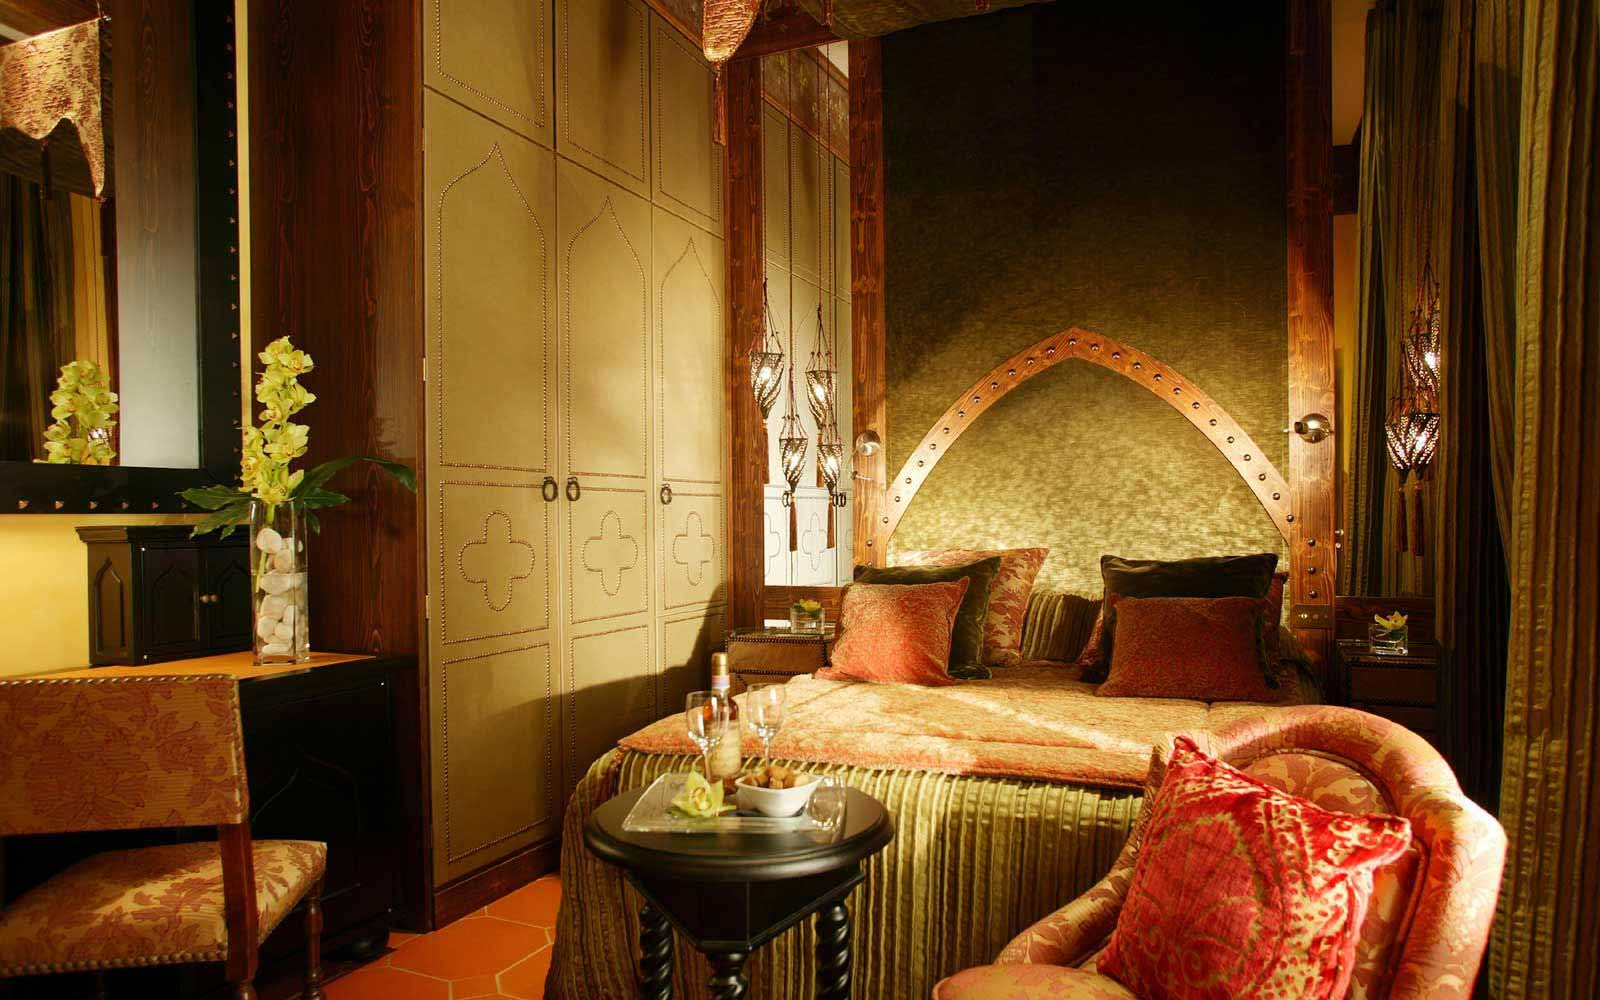 Deluxe room on the Tuscan Floor at Hotel Bernini Palace